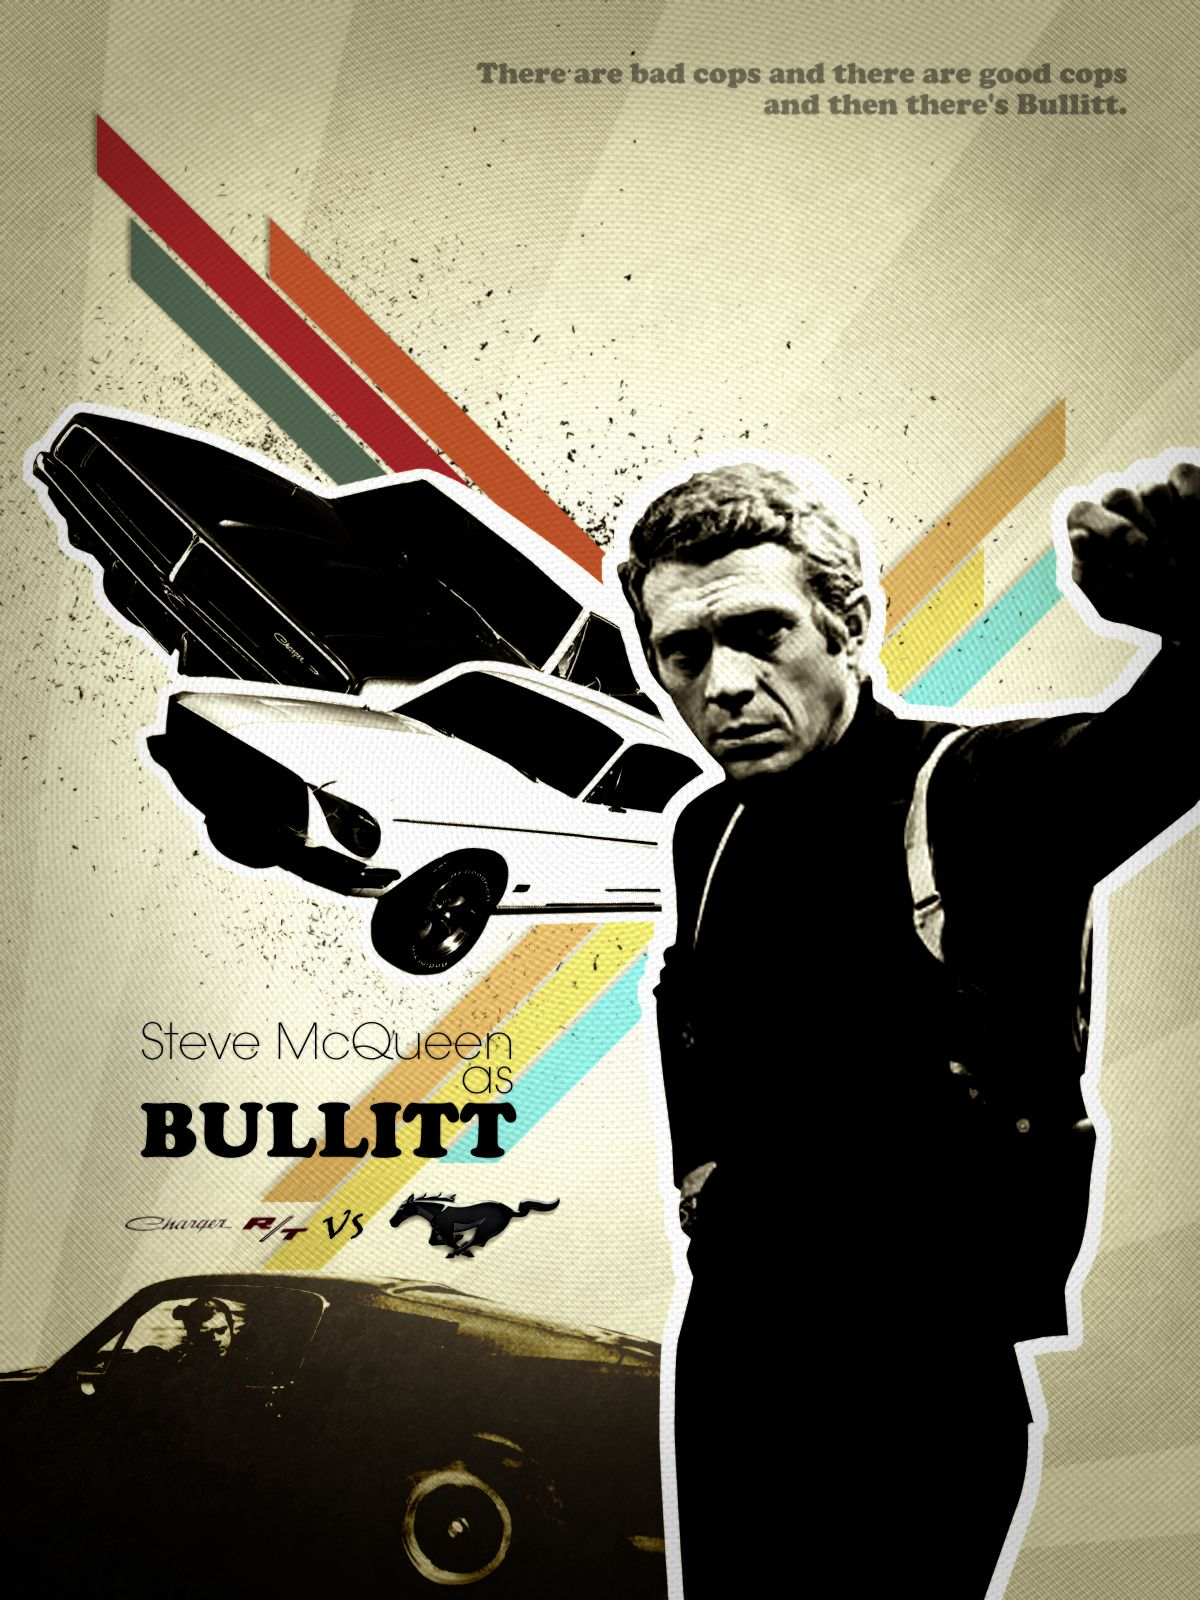 affiches posters et images de bullitt 1968 senscritique. Black Bedroom Furniture Sets. Home Design Ideas